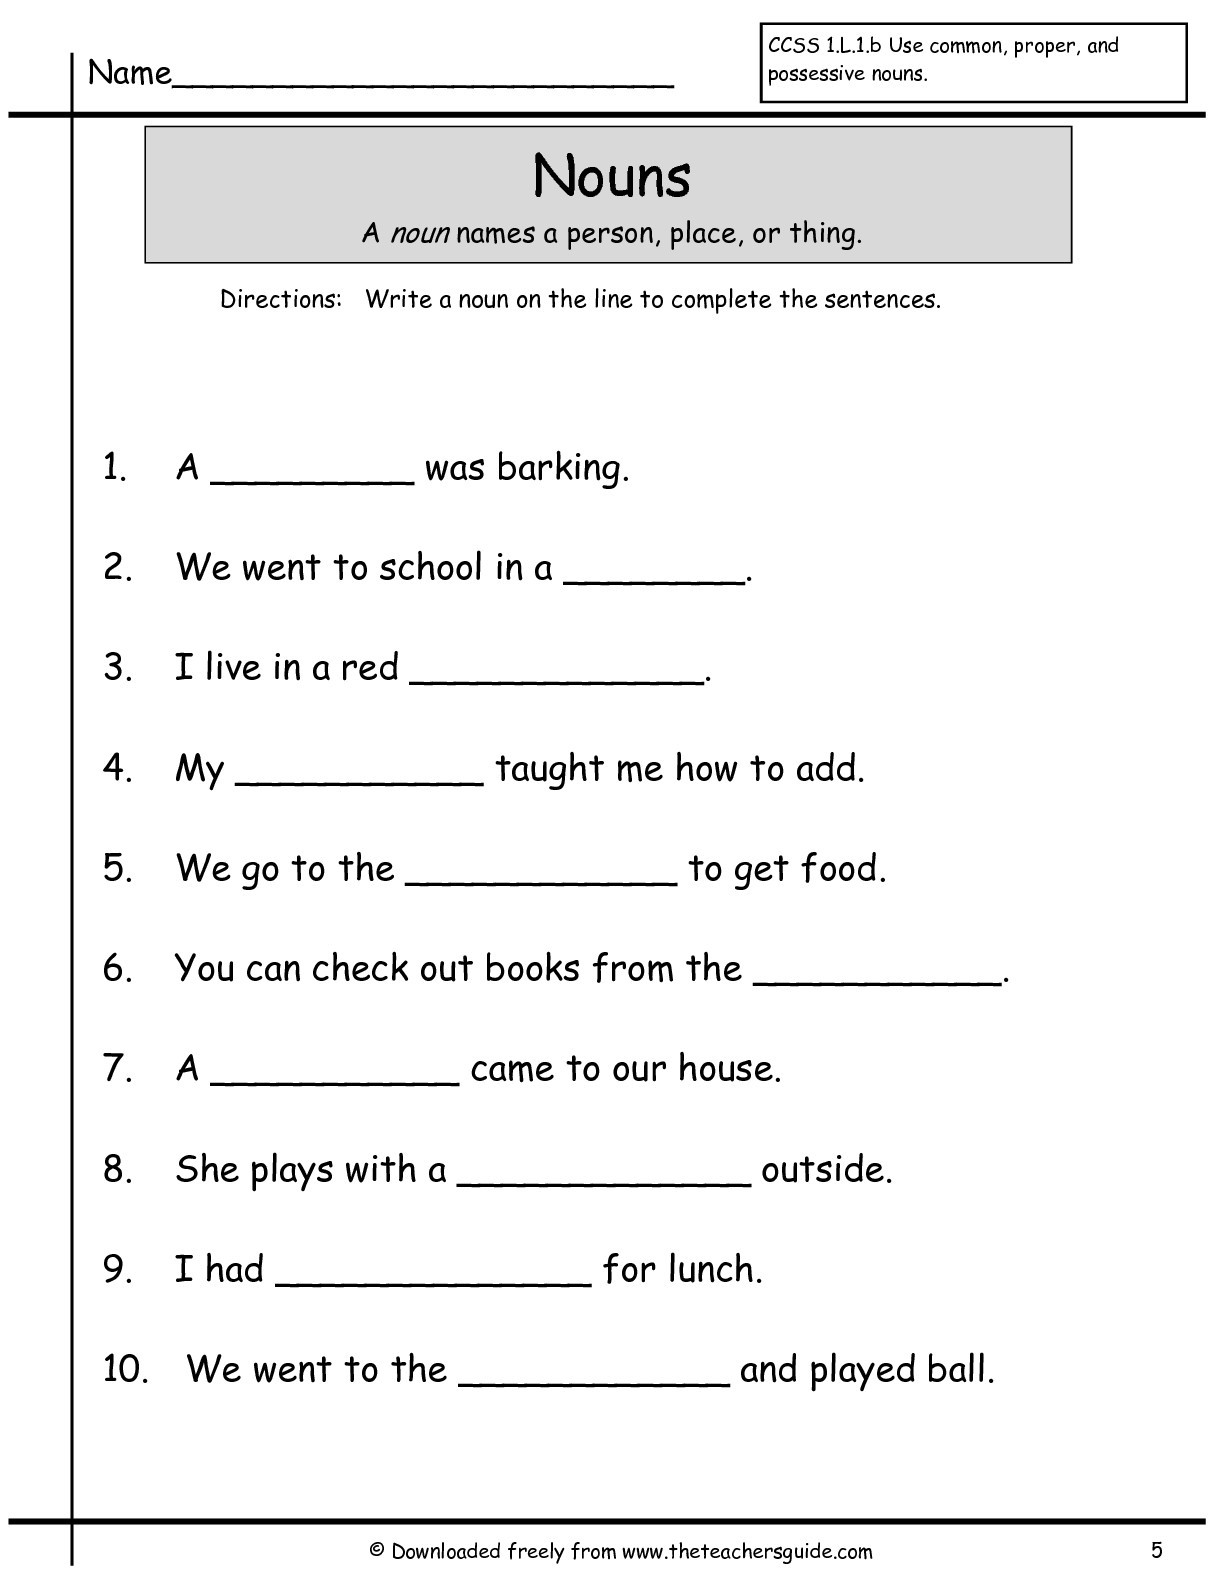 Social Studies Worksheet 1st Grade social Stu S First Grade Worksheets